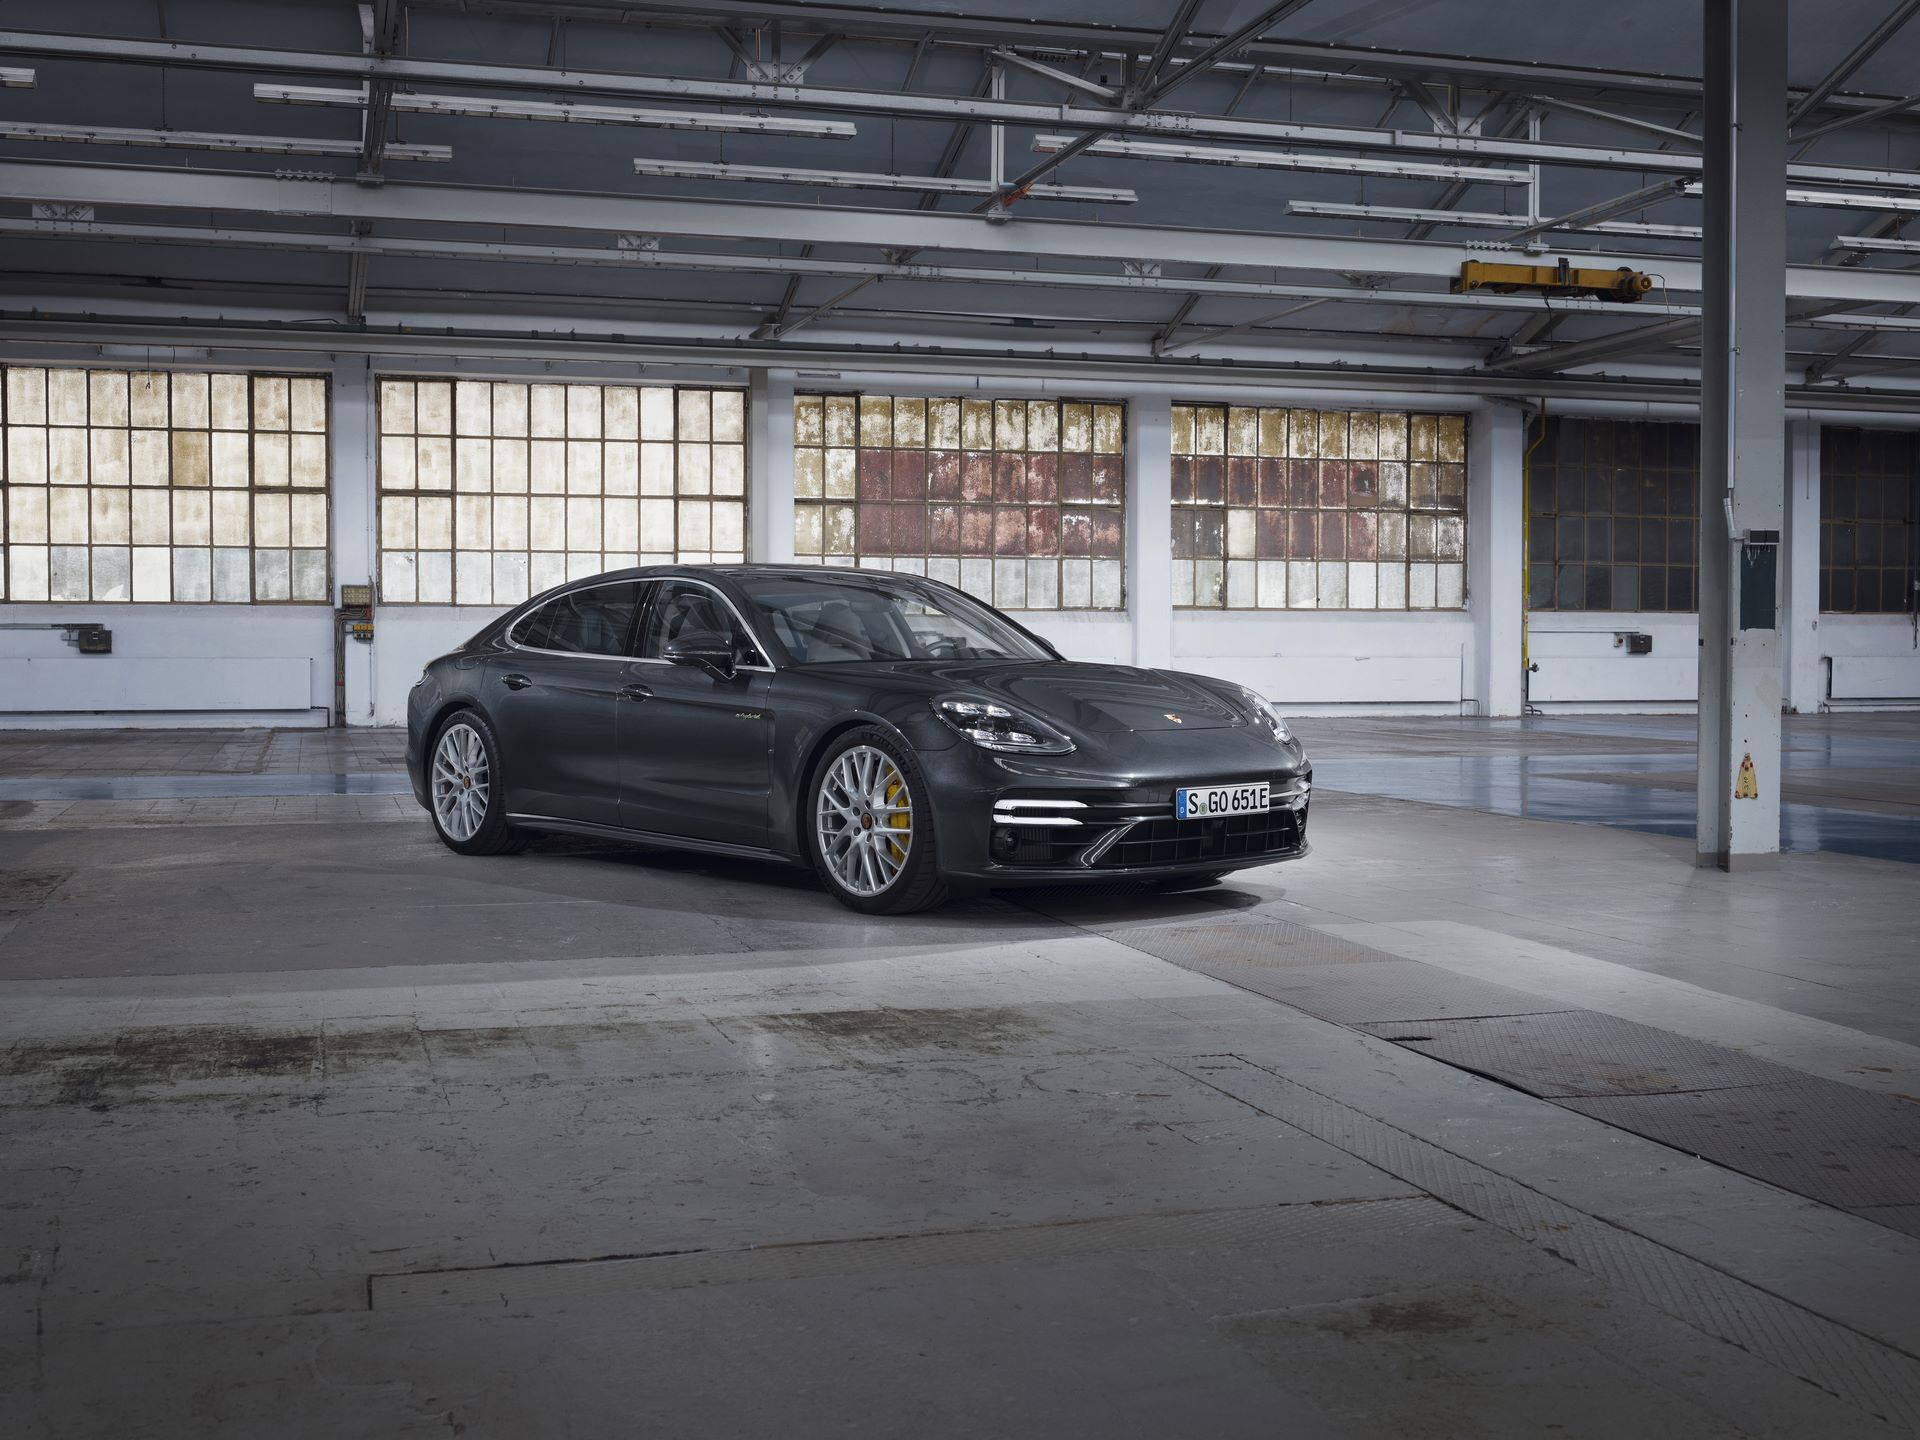 Porsche-Panamera-Turbo-S-E-Hybrid-4-E-Hybrid-and-4S-2021-9